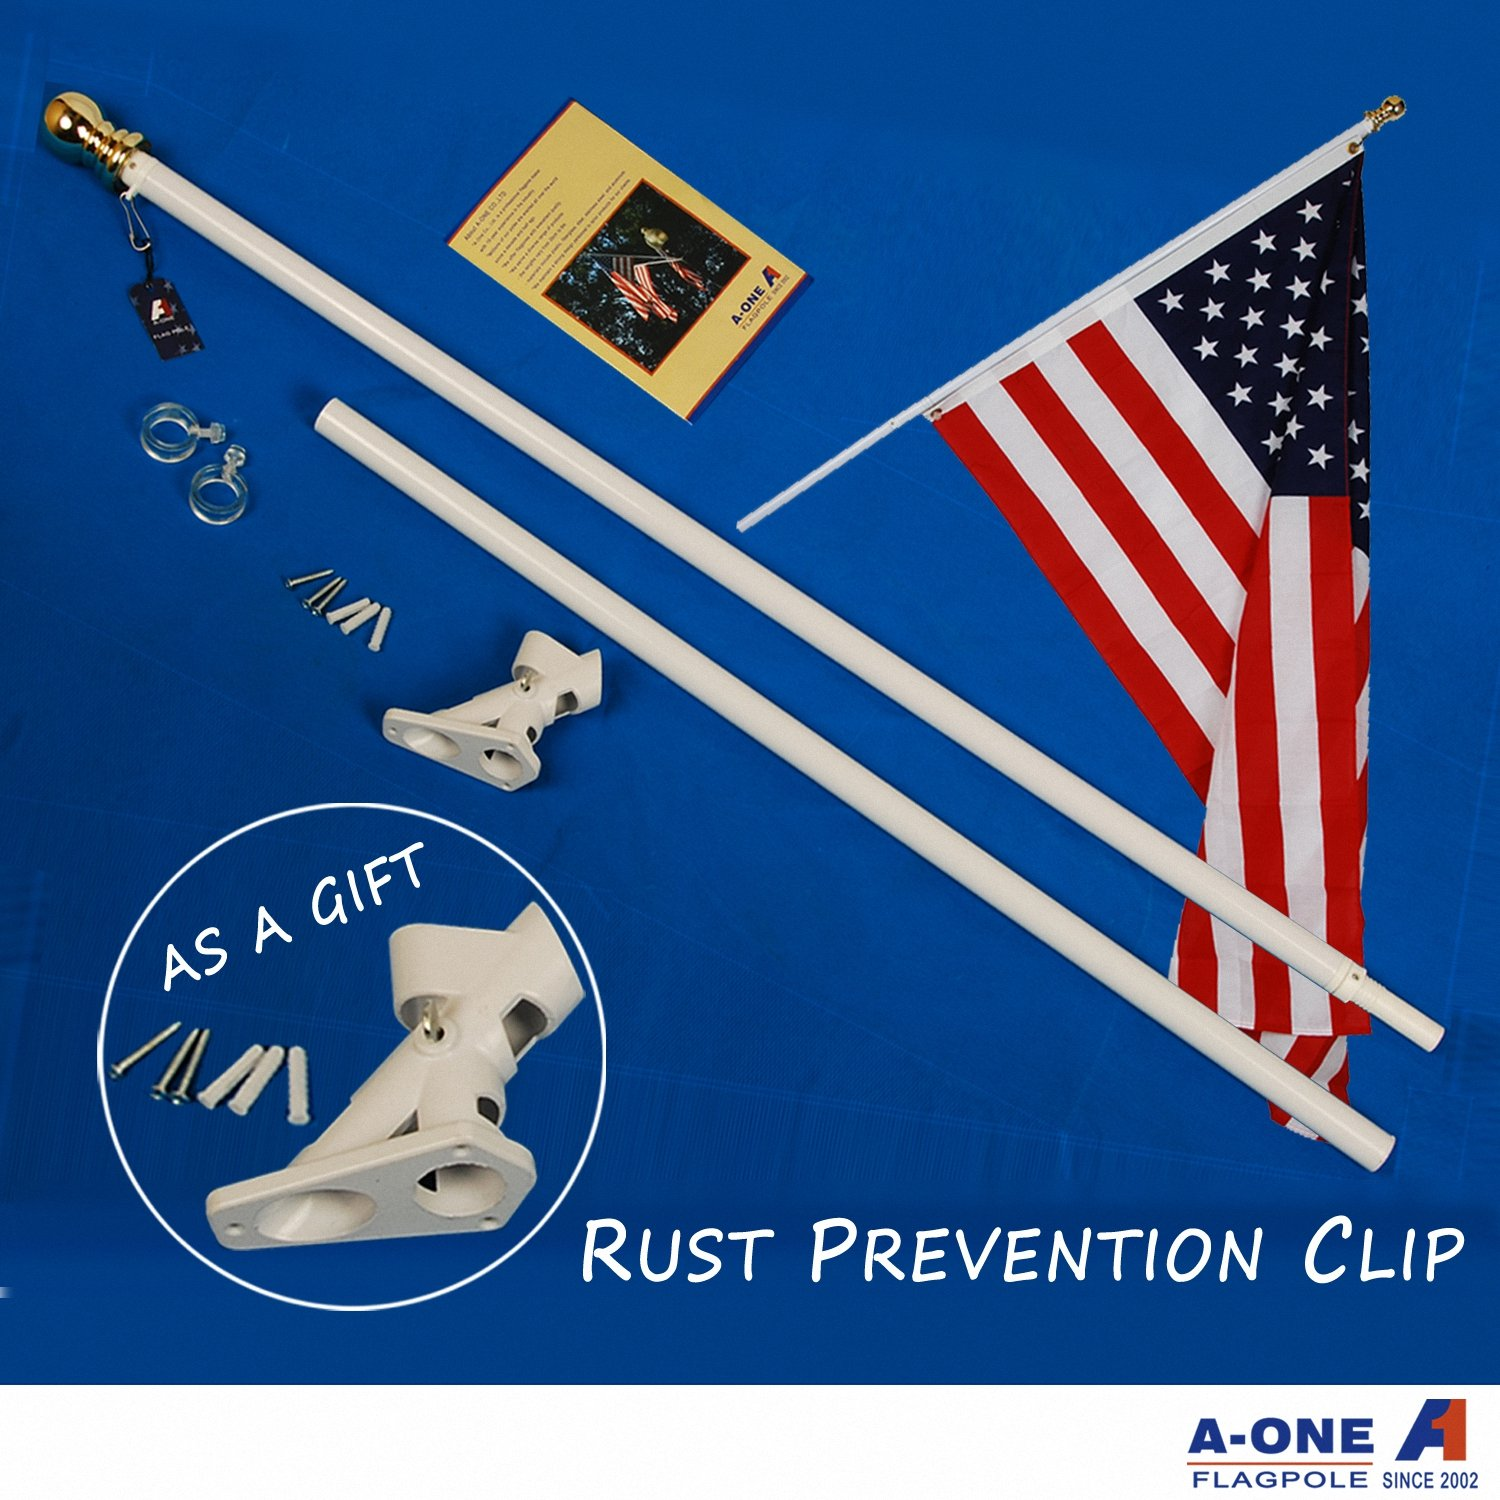 A-ONE 5Ft Tangle Free Spinning Flag pole, Deluxe Aluminum American US FlagPole Kit with Stainless Steel Rust Prevention Clip and Free Bracket for Outdoor Residential or Commercial Wall Mount, White